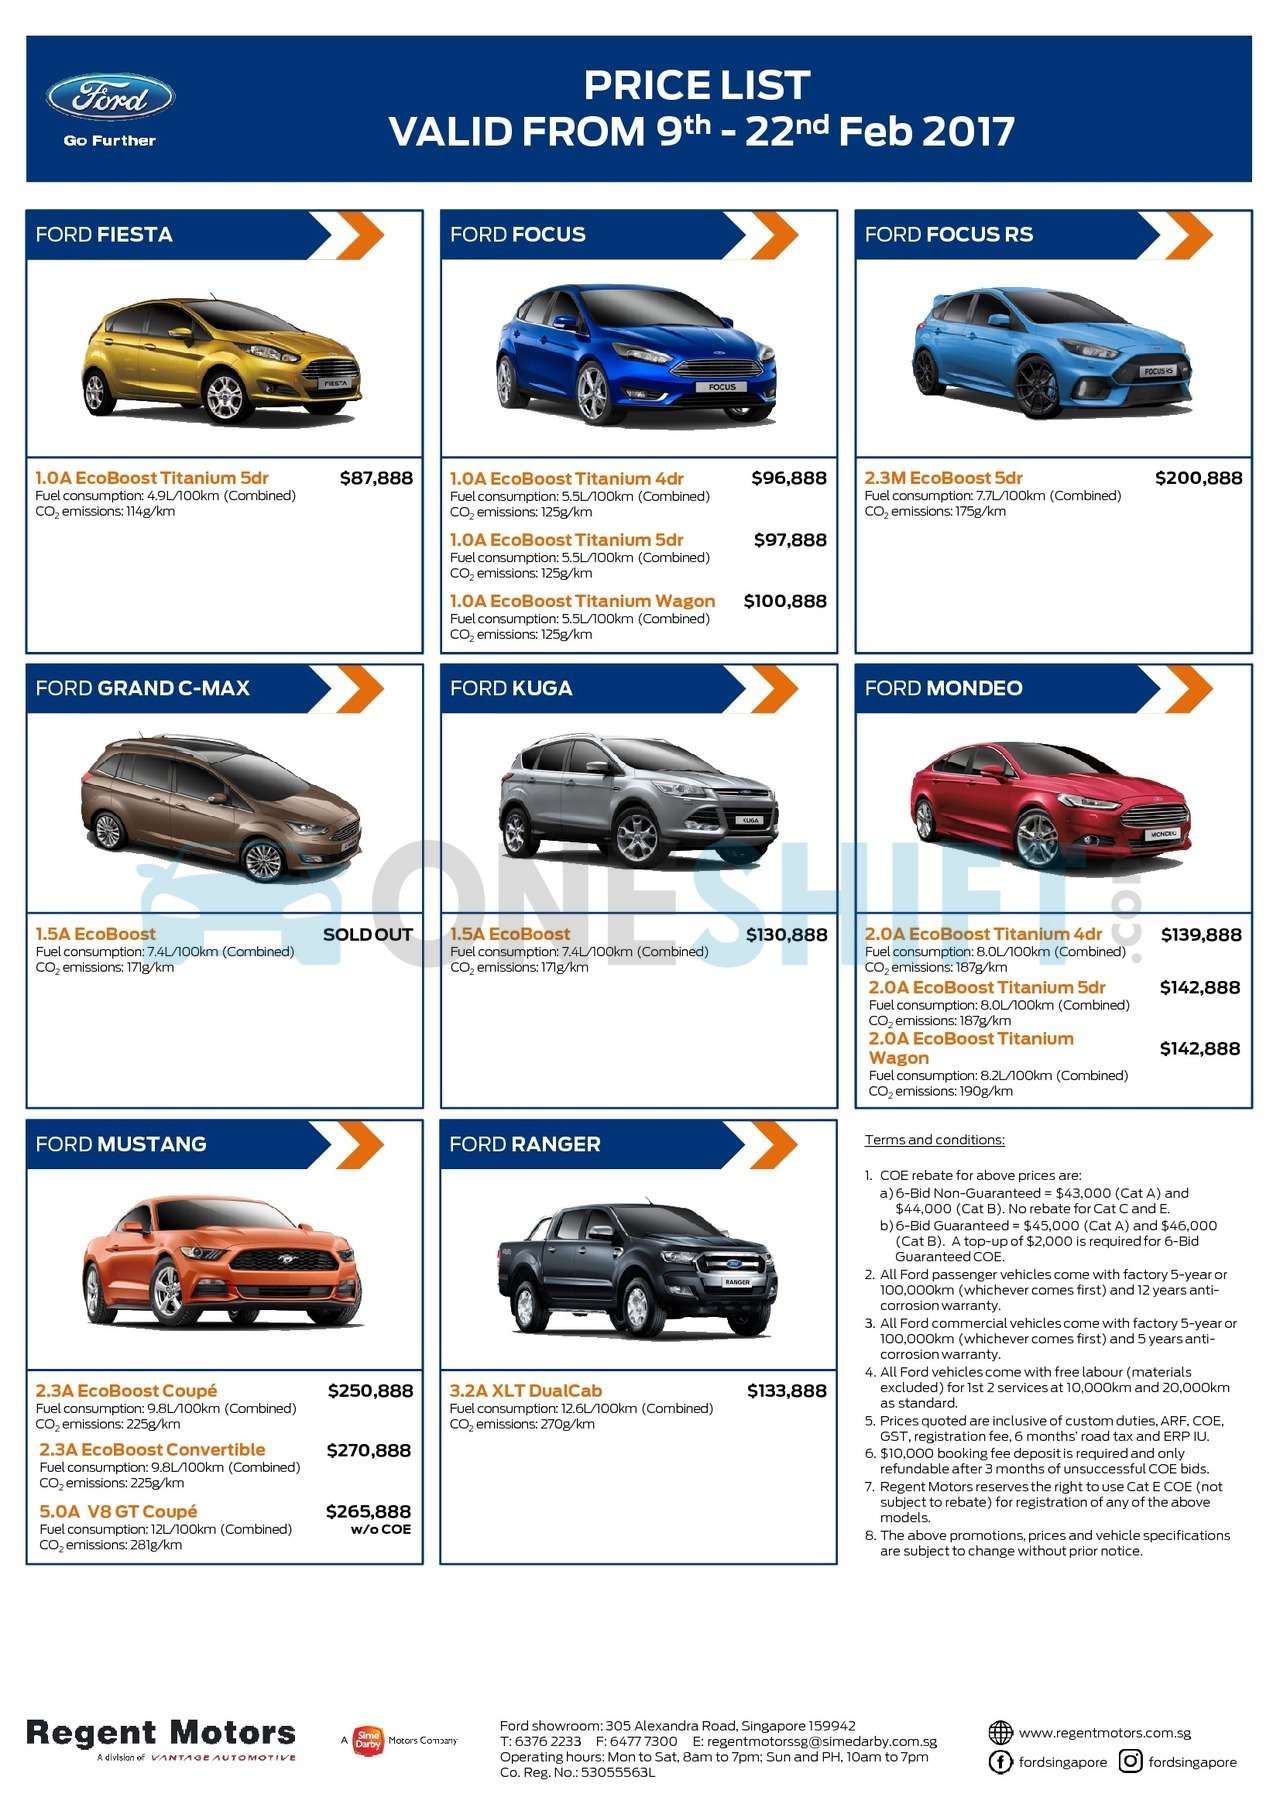 ford Price List 2-9-2017 Page 1